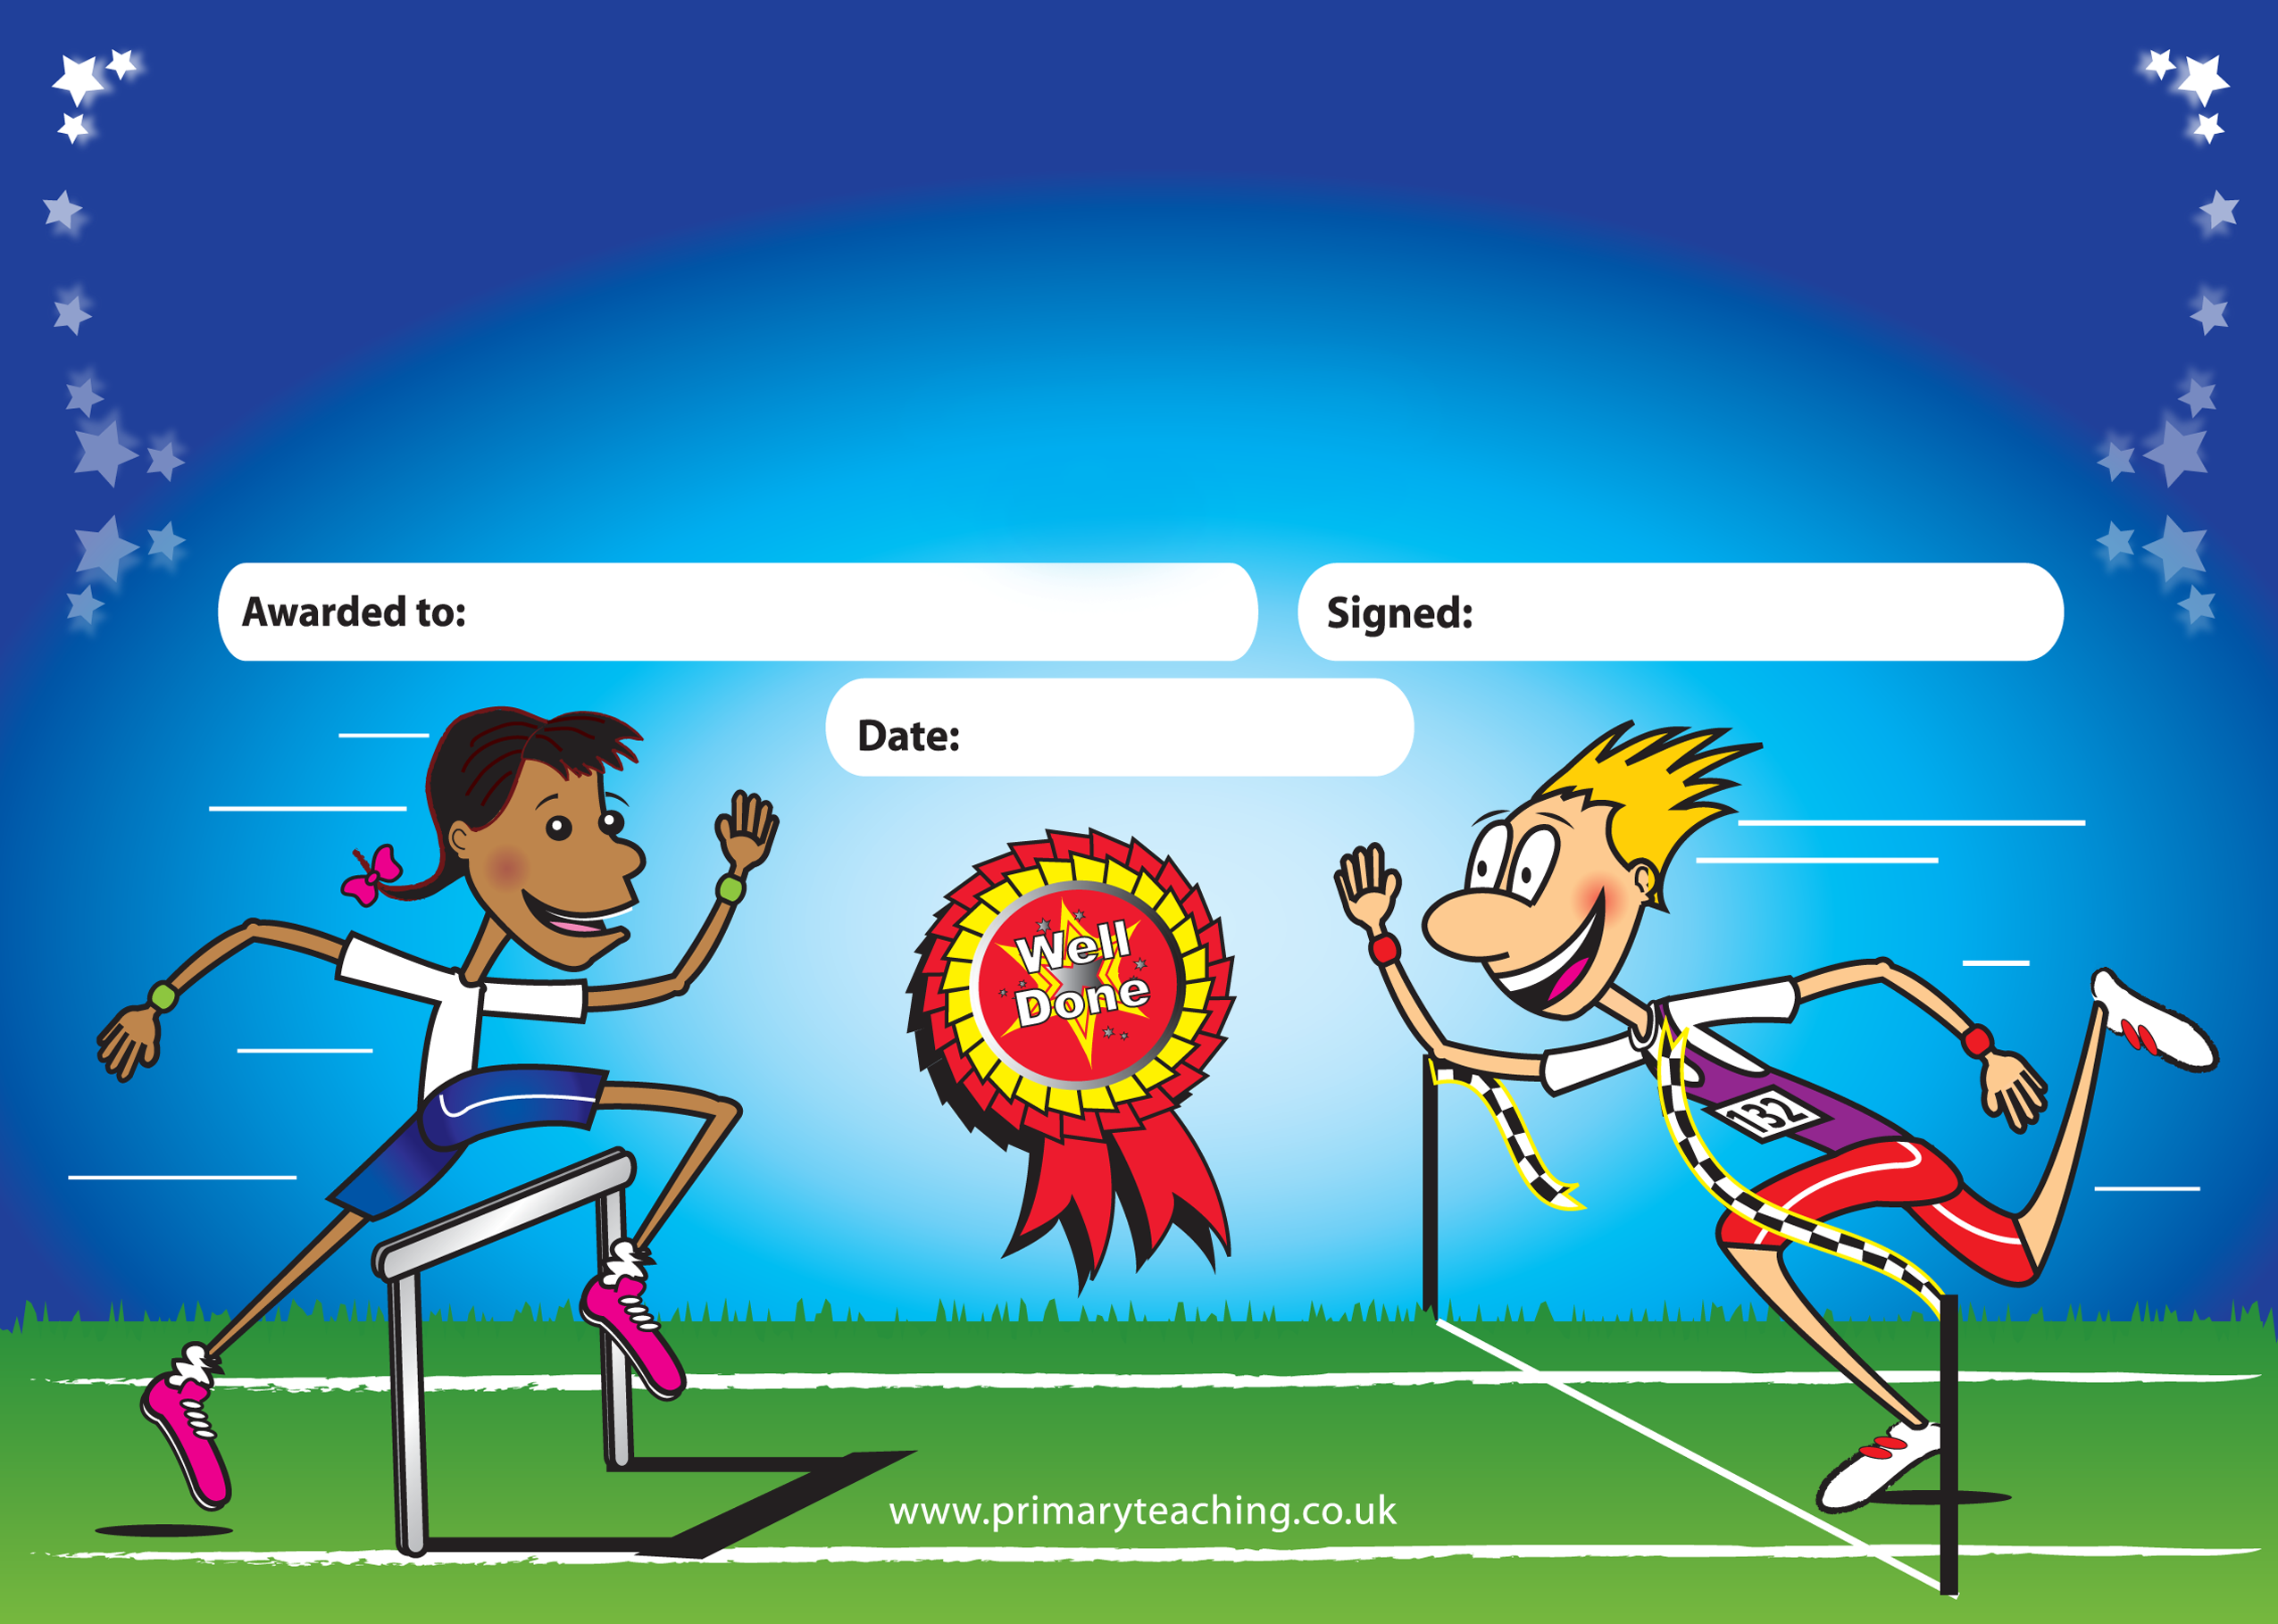 A5 personalised certificates with a sports day design a5 personalised sports day certificate psd8 xflitez Gallery